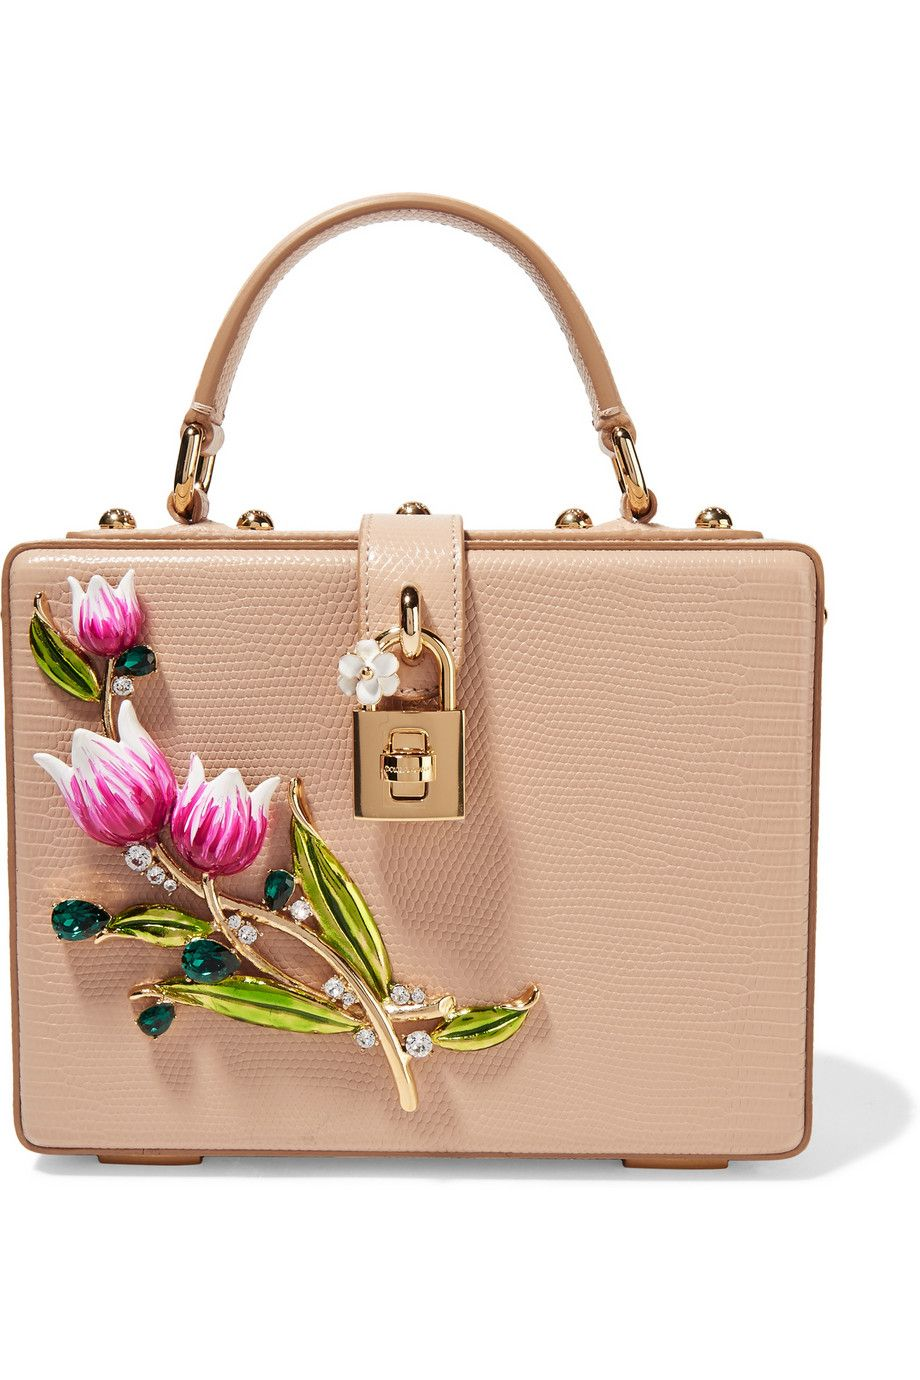 Dolce   Gabbana lizard-effect-leather shoulder bag with painted tulips made  in Italy €1,950 (2016) 47b8902492